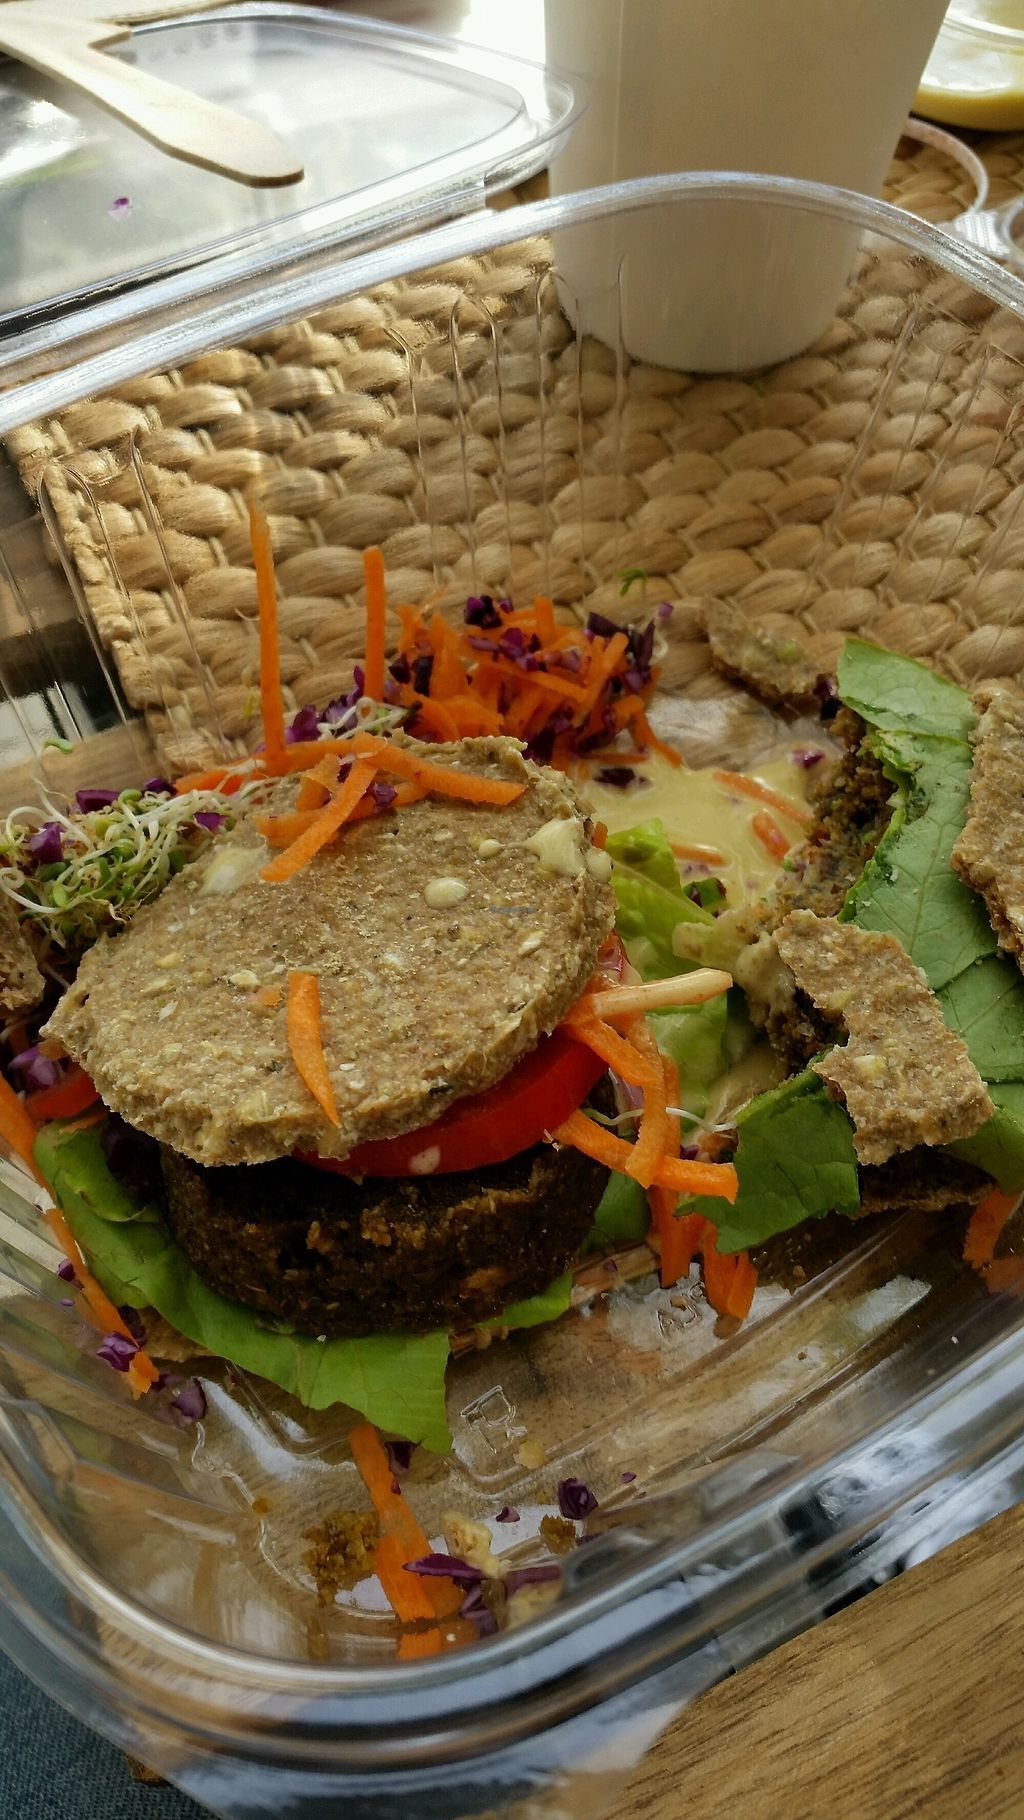 """Photo of Vegan & Raw  by <a href=""""/members/profile/shakaboyle"""">shakaboyle</a> <br/>popeye burger , super small <br/> October 3, 2017  - <a href='/contact/abuse/image/71625/311403'>Report</a>"""